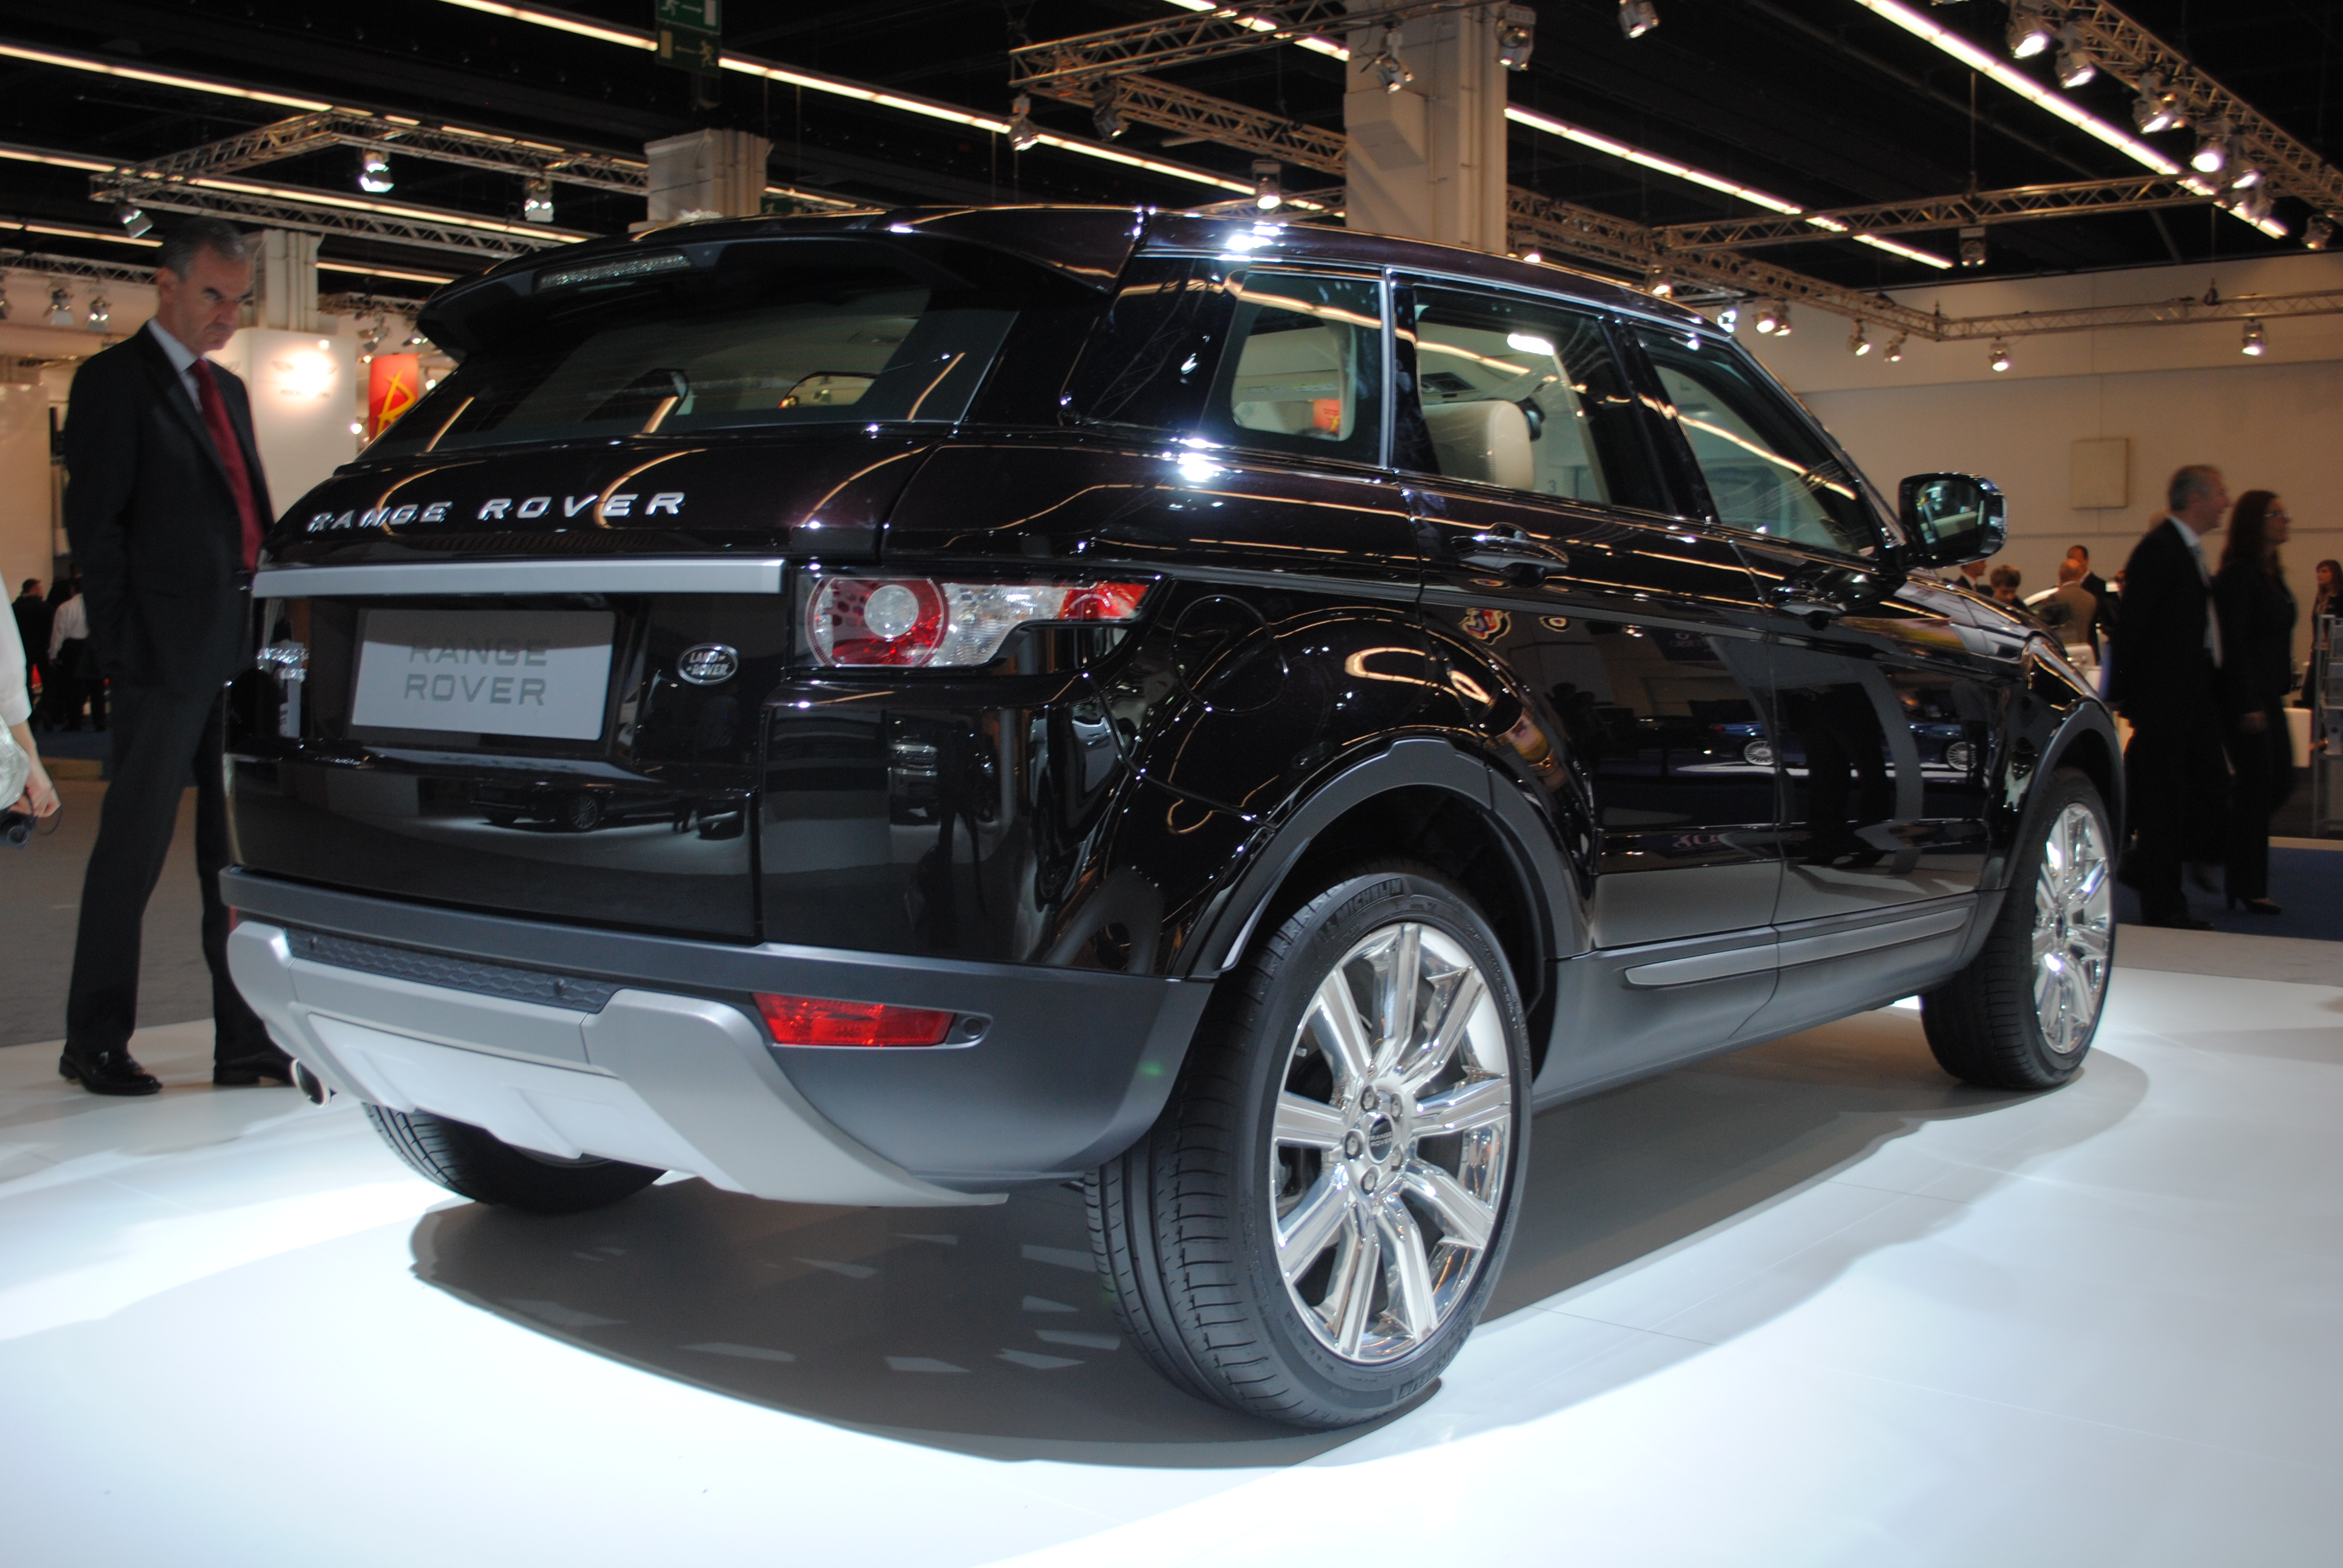 https://upload.wikimedia.org/wikipedia/commons/0/02/Land_Rover_Range_Rover_Evoque_SD4_at_the_Frankfurt_Motor_Show_IAA_2011_%286149793860%29.jpg